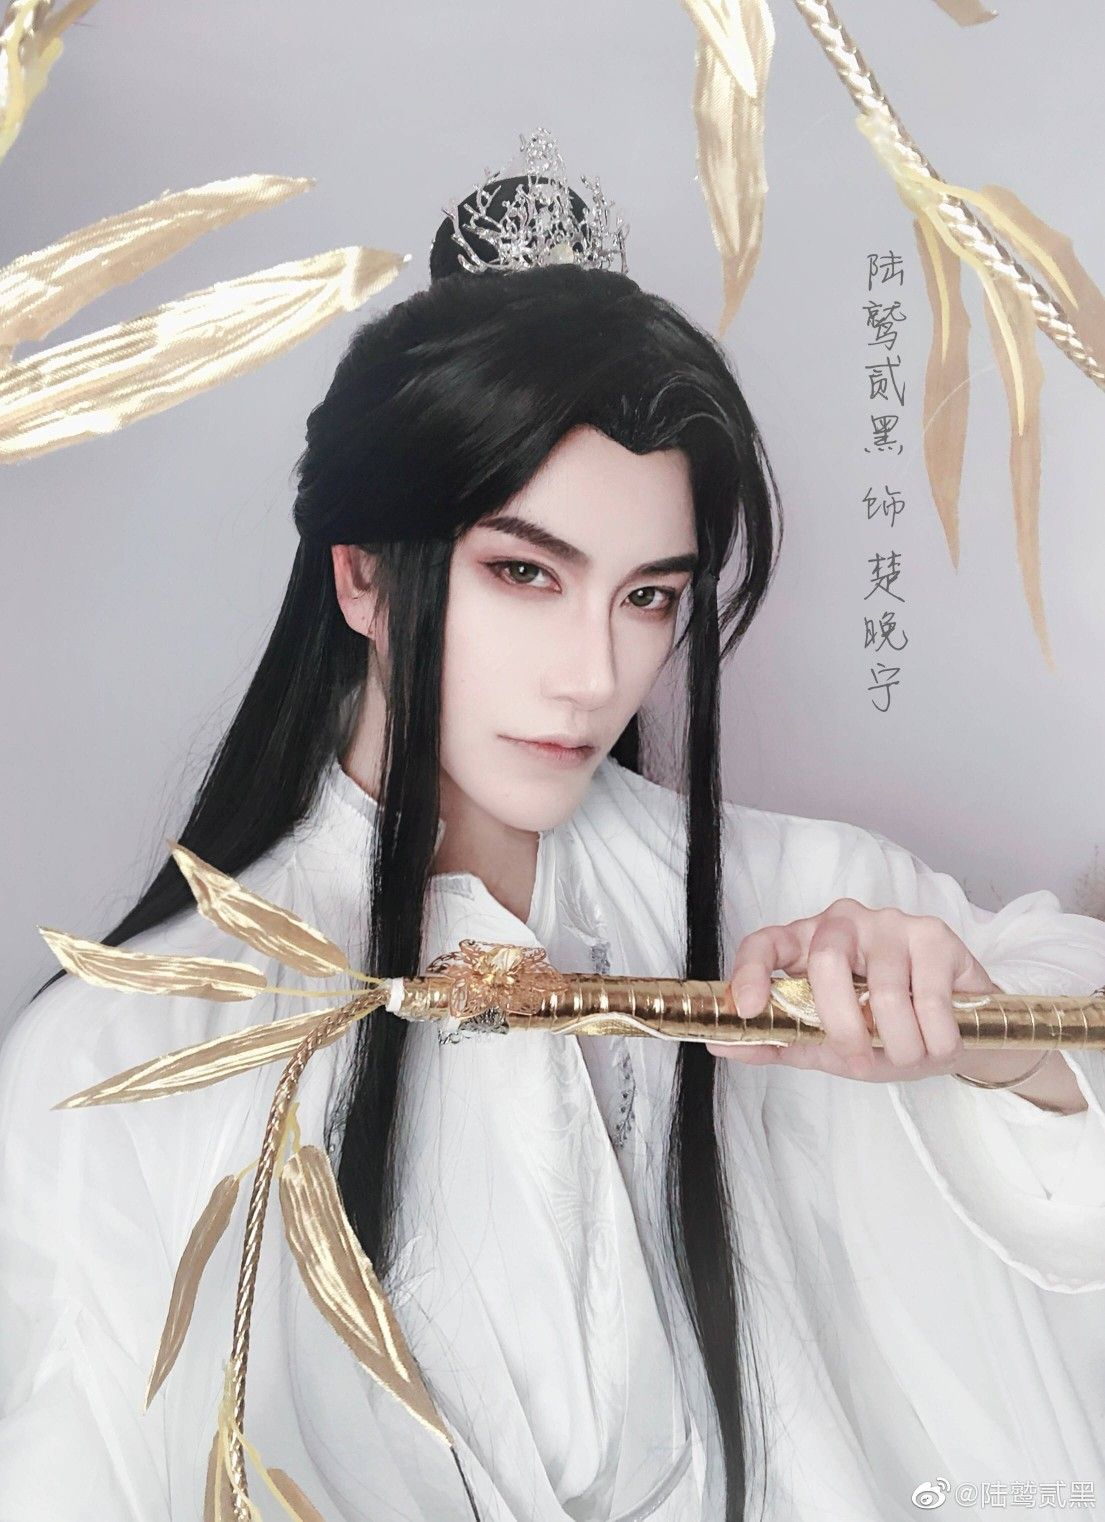 [Cosplay] 二哈和他的白猫师尊 in 2020 Cat cosplay, White cat, Cosplay